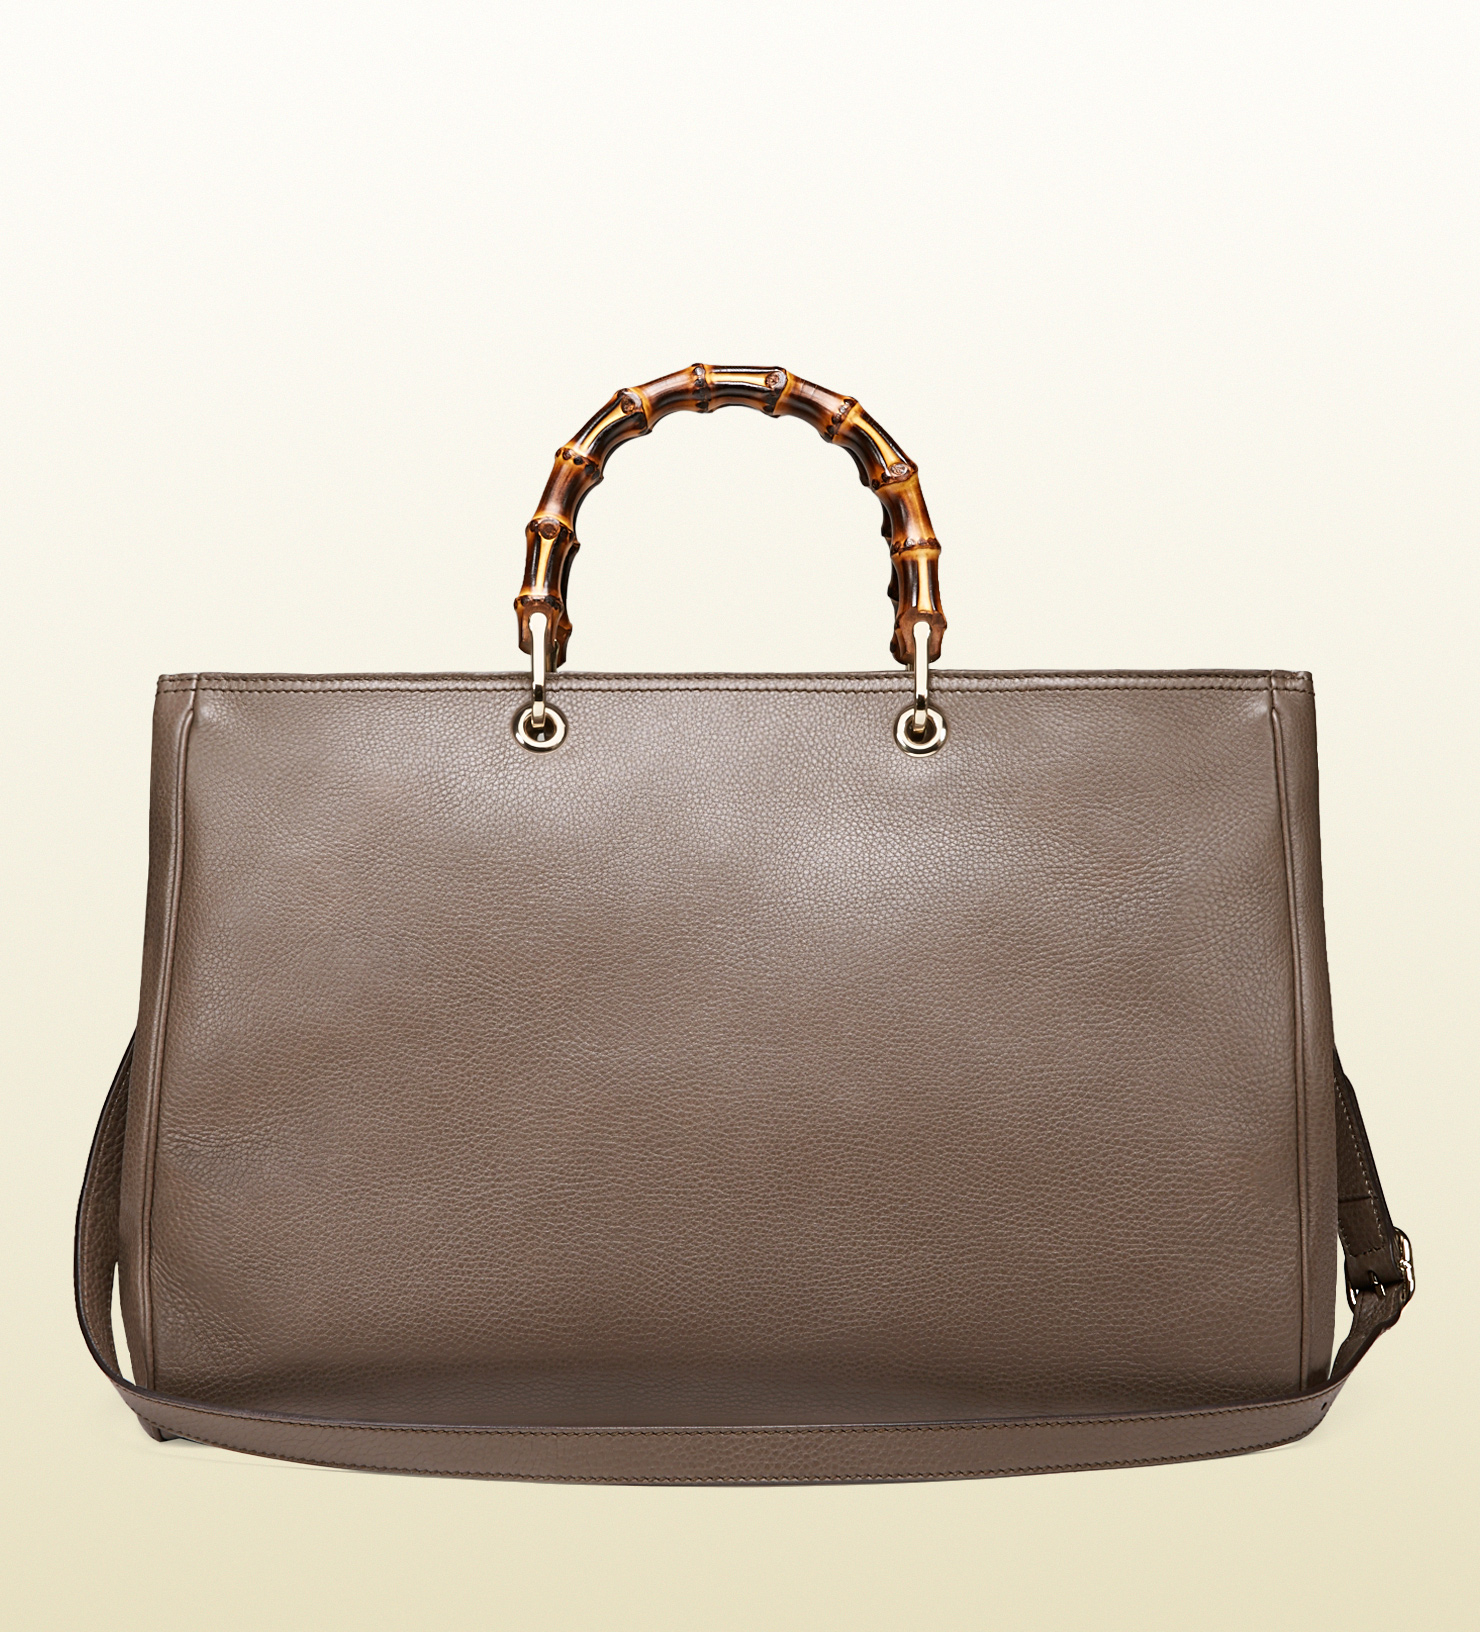 gucci bamboo shopper leather tote in brown lyst. Black Bedroom Furniture Sets. Home Design Ideas